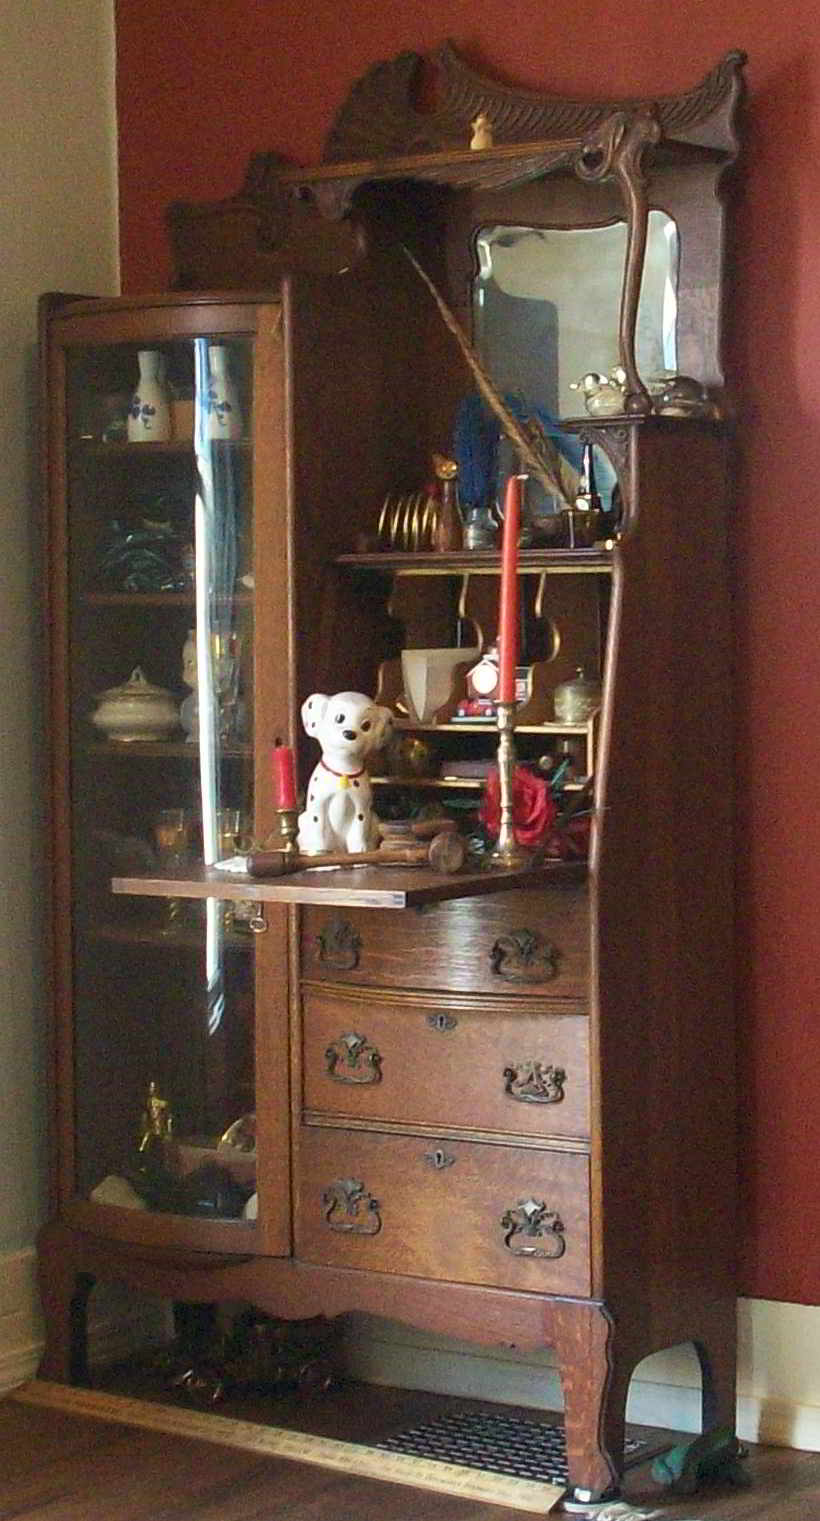 Antique oak secretary with curved glass curio cabinet For Sale | Antiques.com  | Classifieds - Antique Oak Secretary With Curved Glass Curio Cabinet For Sale